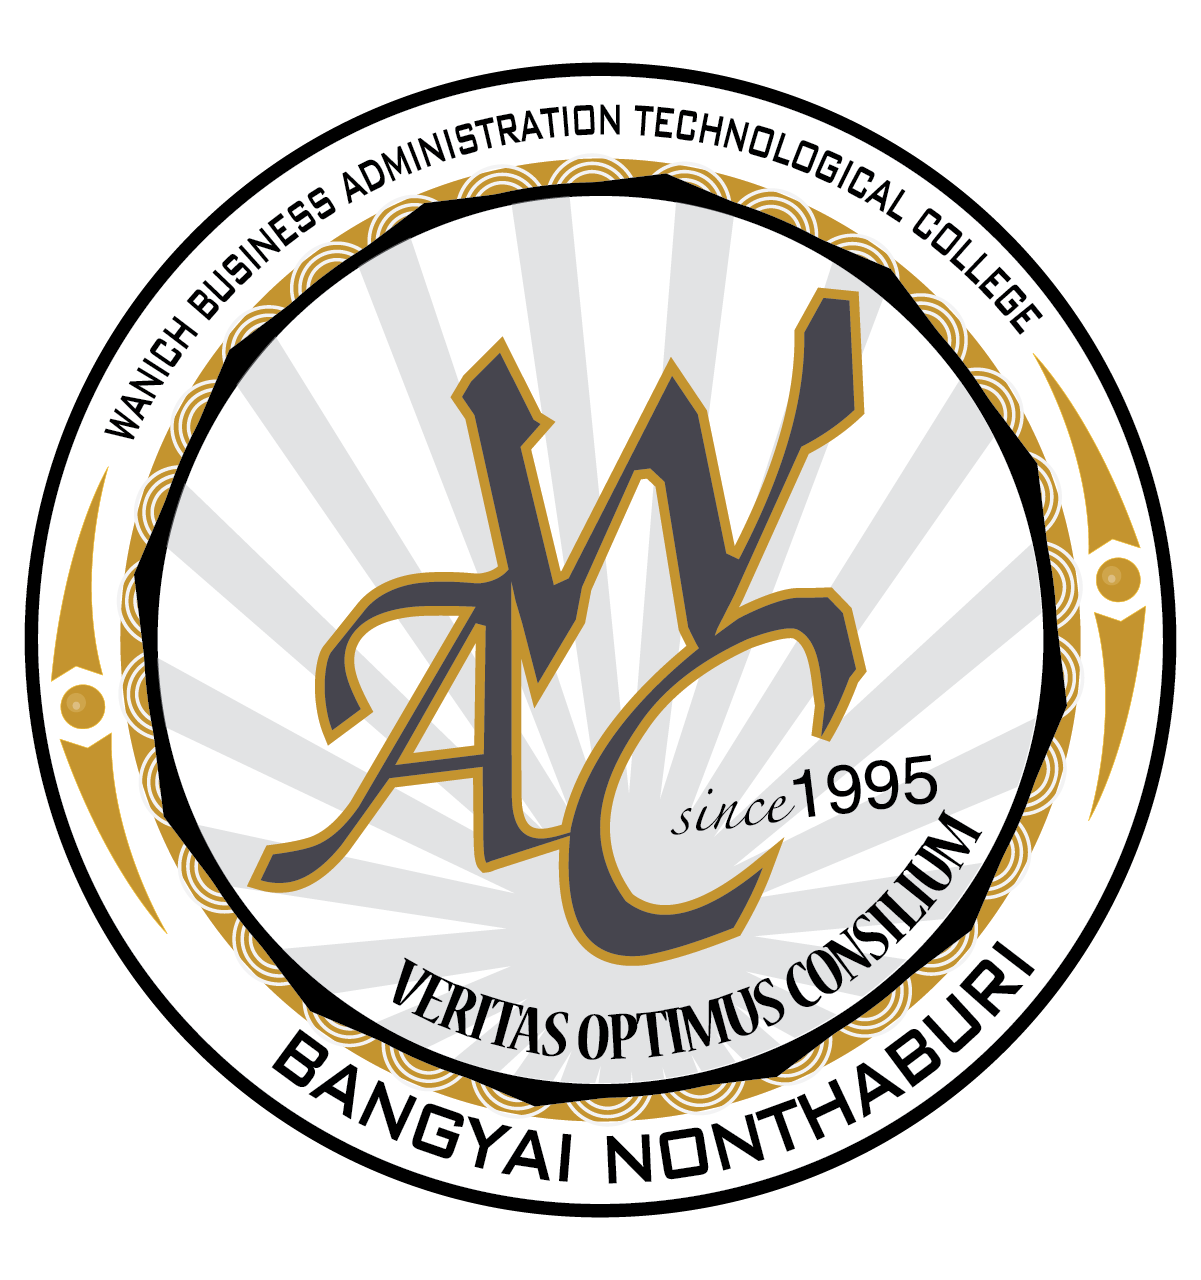 Logo WANICH BUSINESS ADMINISTRATION TECHNOLOGICAL COLLEGE